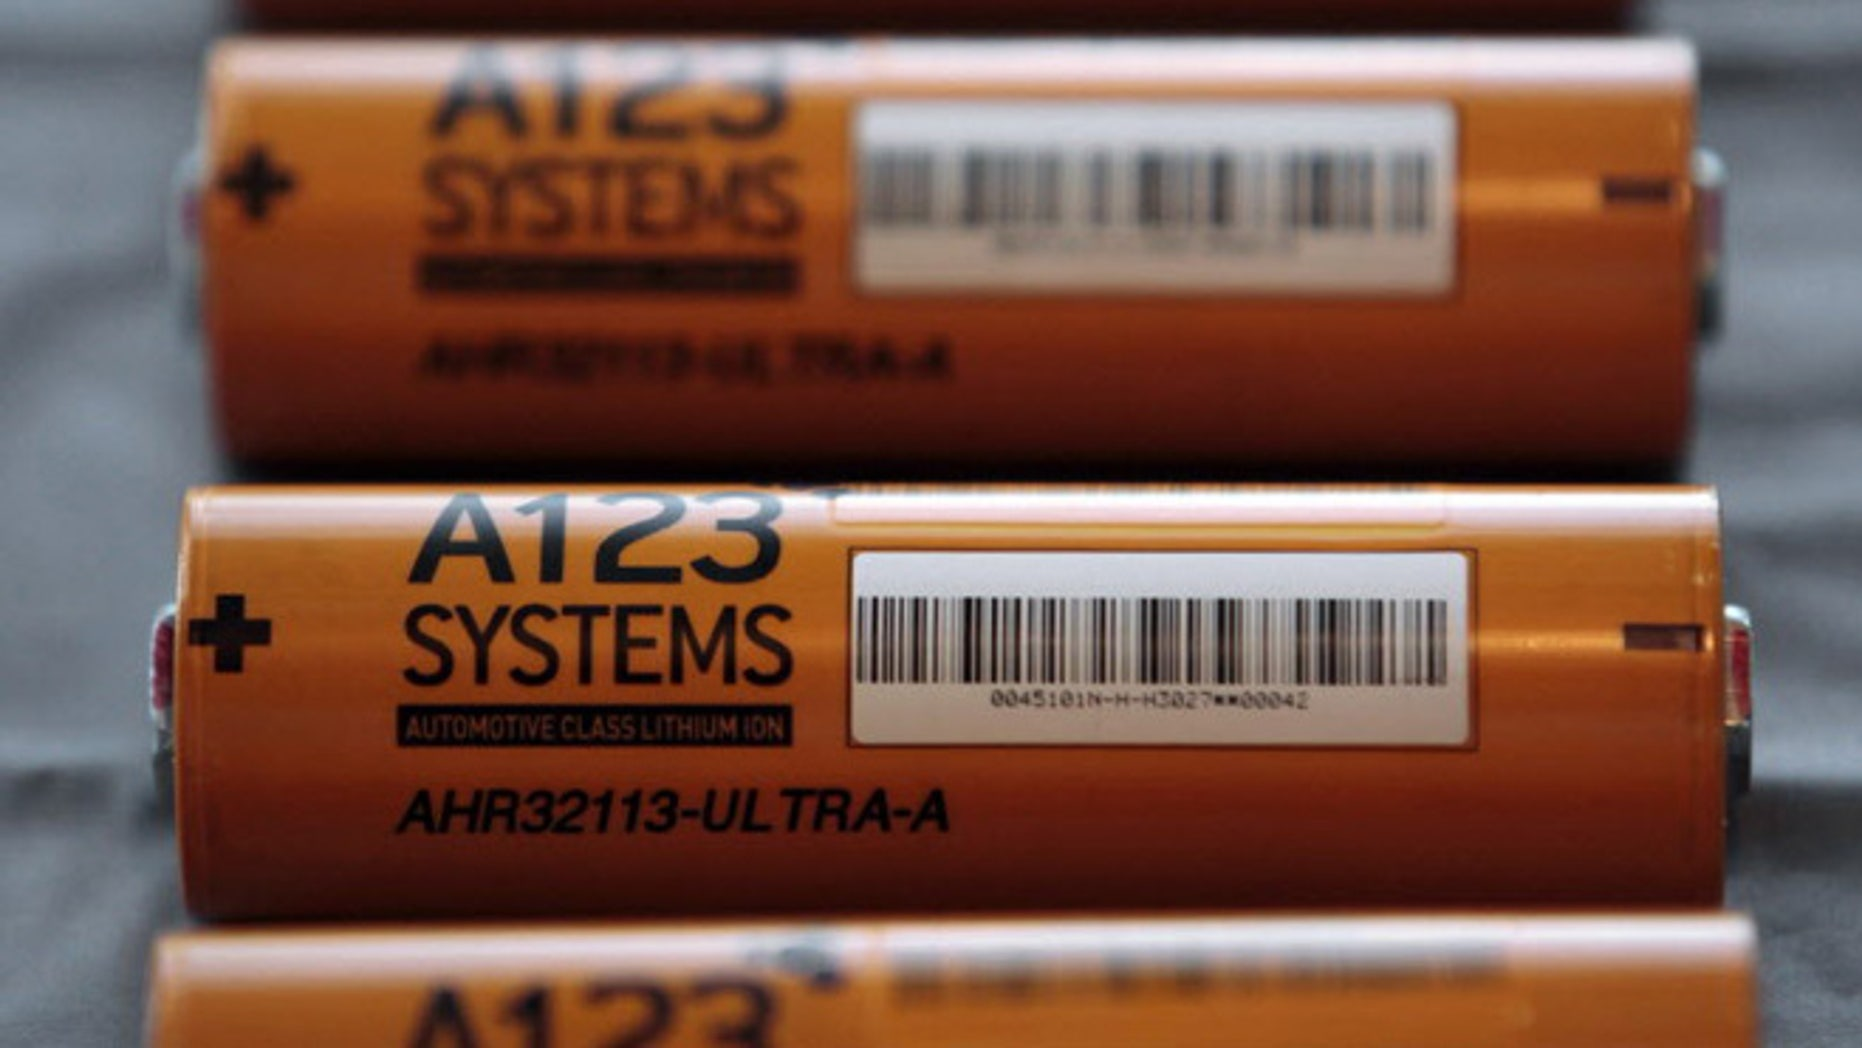 The U S Government Has Roved Of Taxpayer Backed A123 Systems To A Chinese Company Despite Security And Economic Concerns About Sensitive